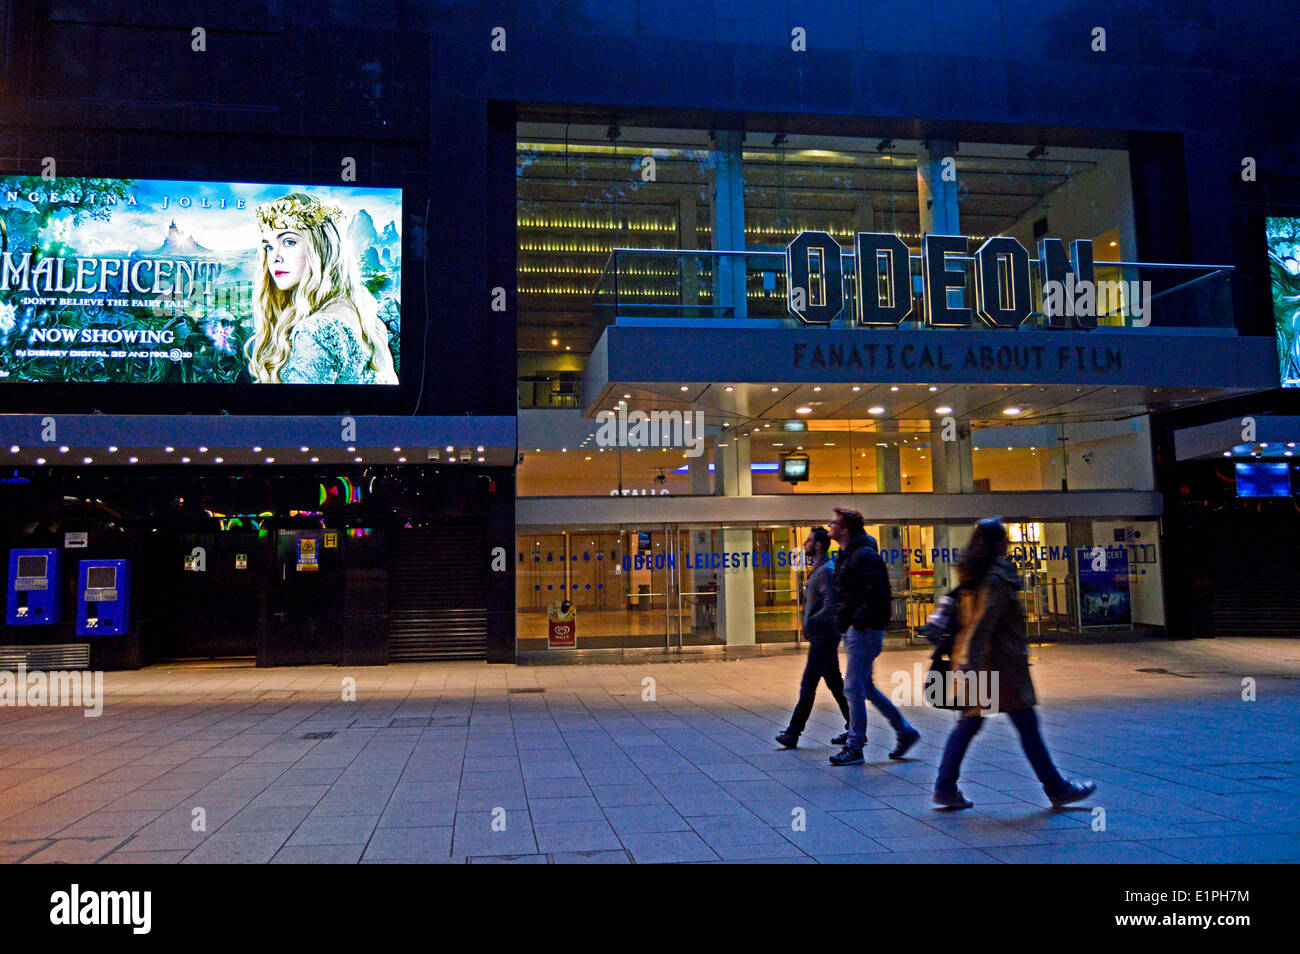 Odeon Cinema at night, Leicester Square, West End,London, England, United Kingdom - Stock Image